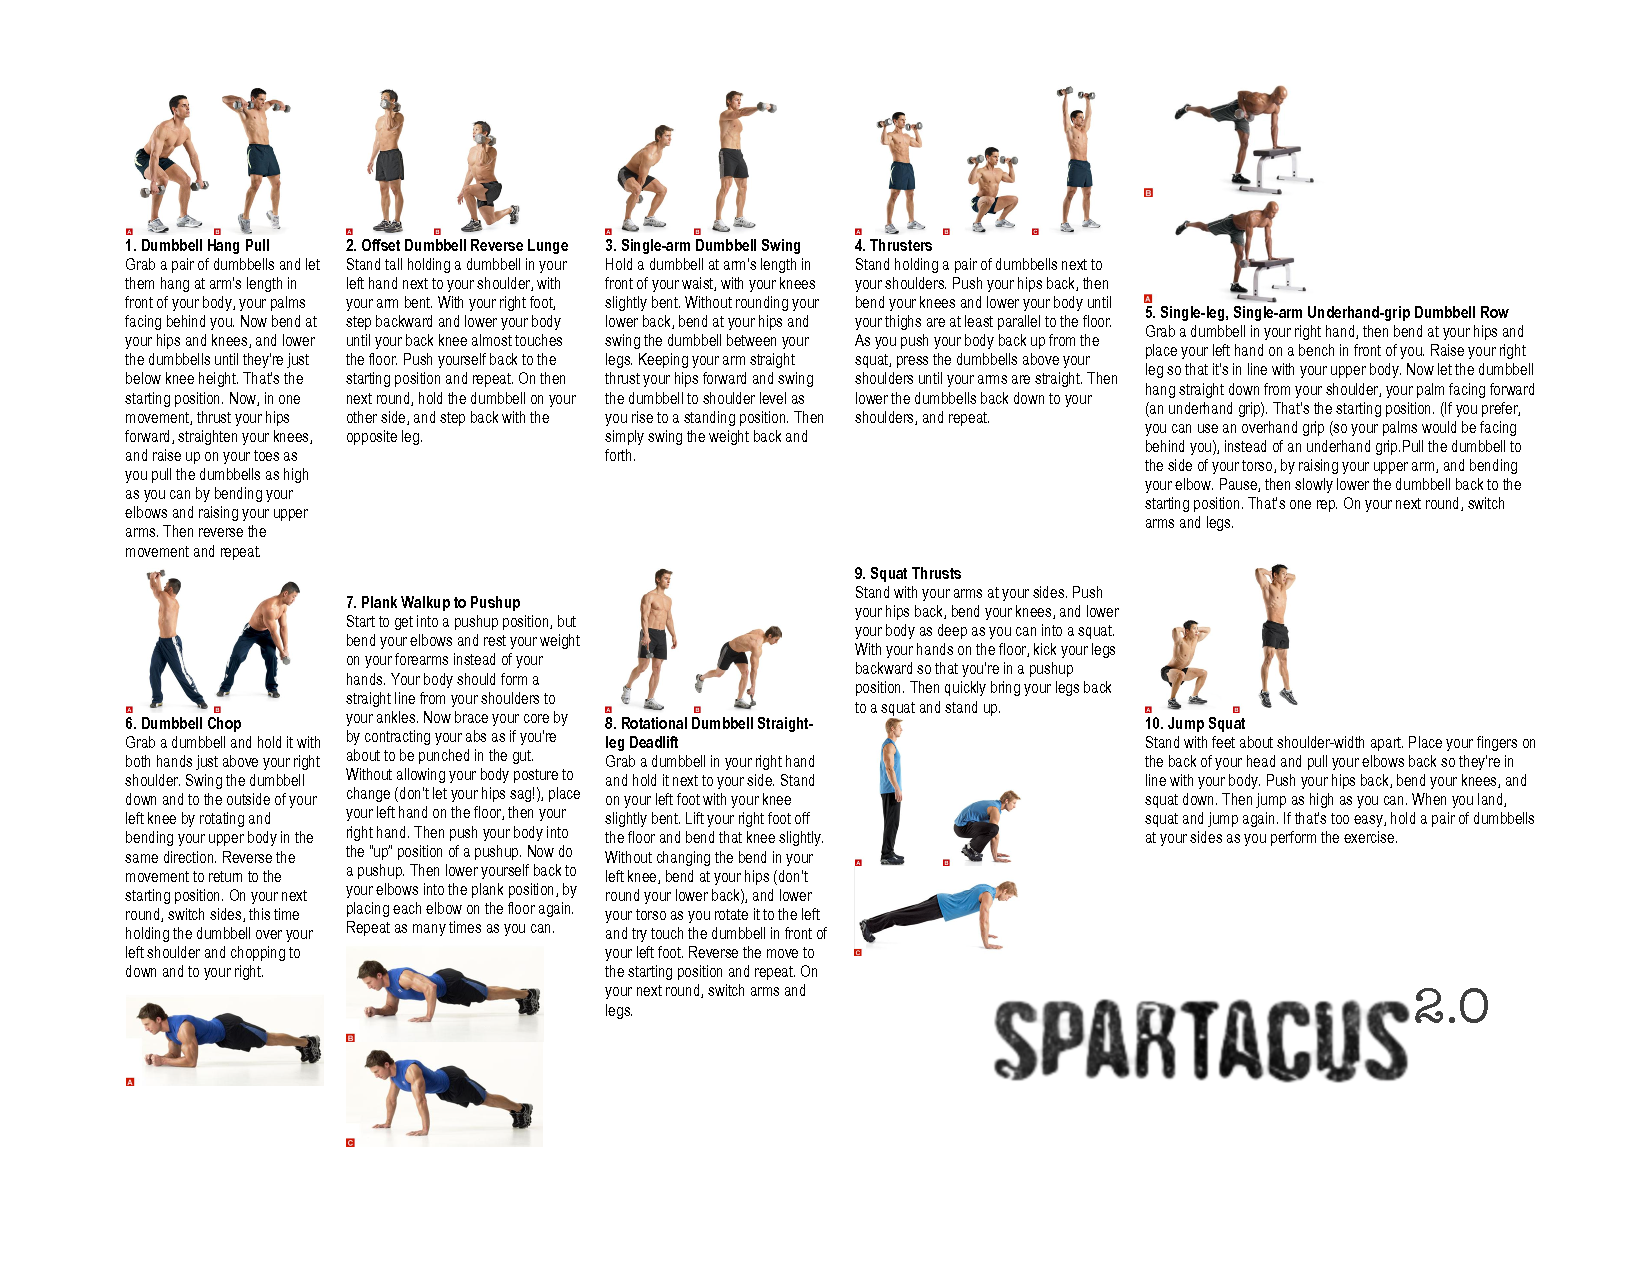 photo regarding Spartacus Workout Printable identified as Pin upon effort outs